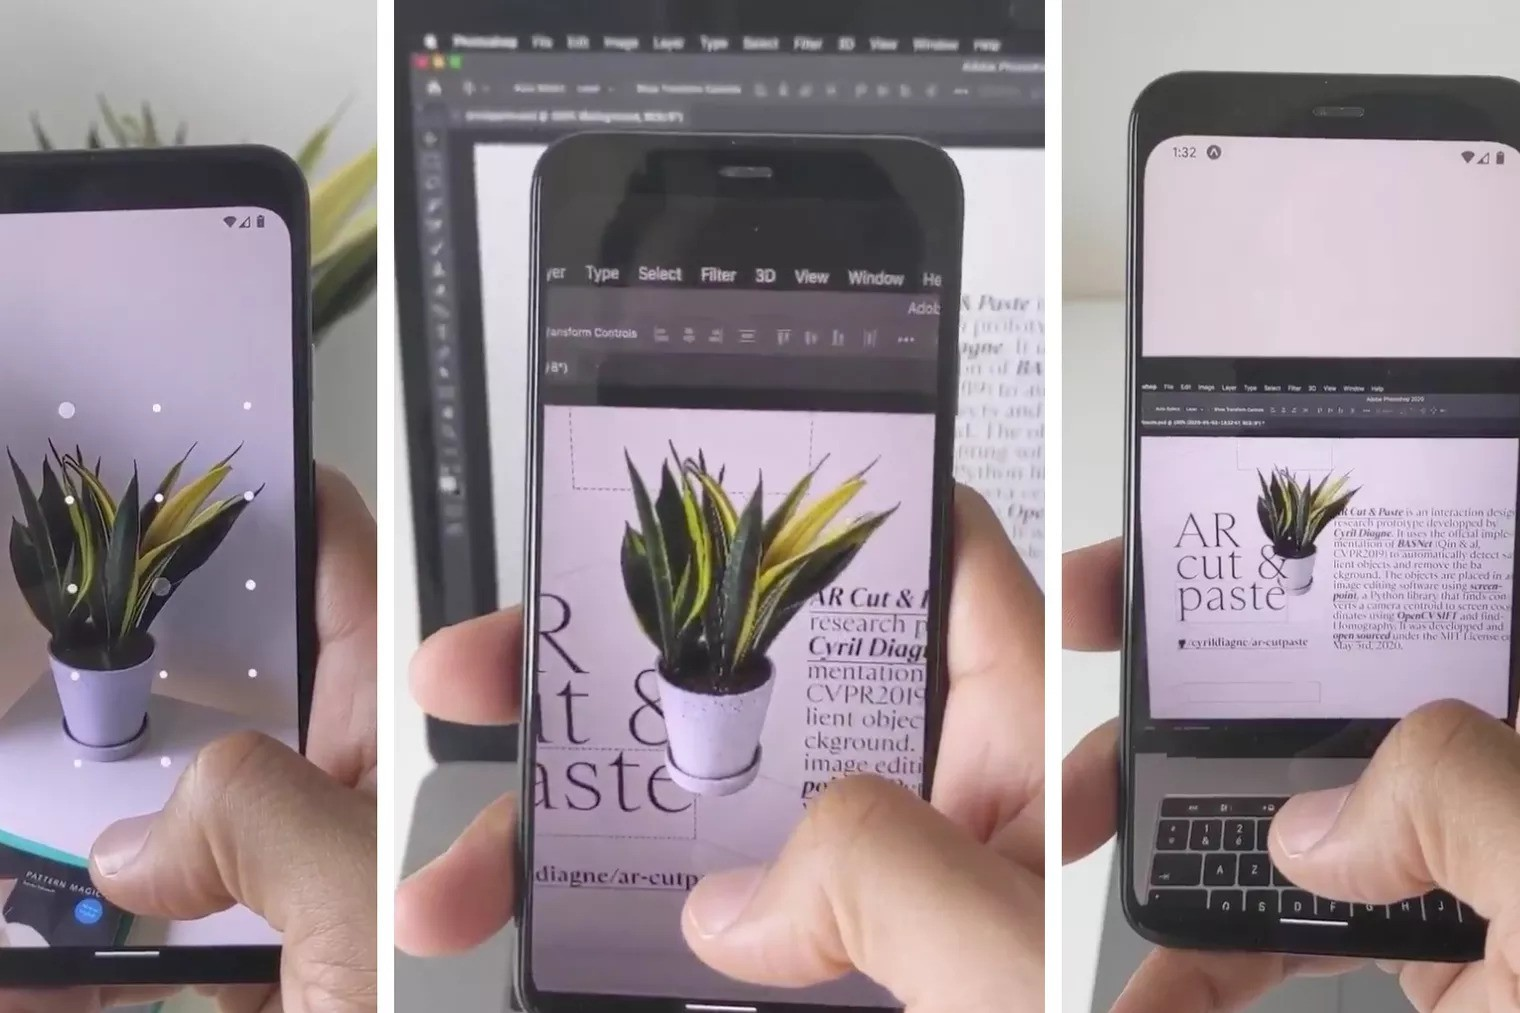 Copy and paste the real world with your phone using augmented reality